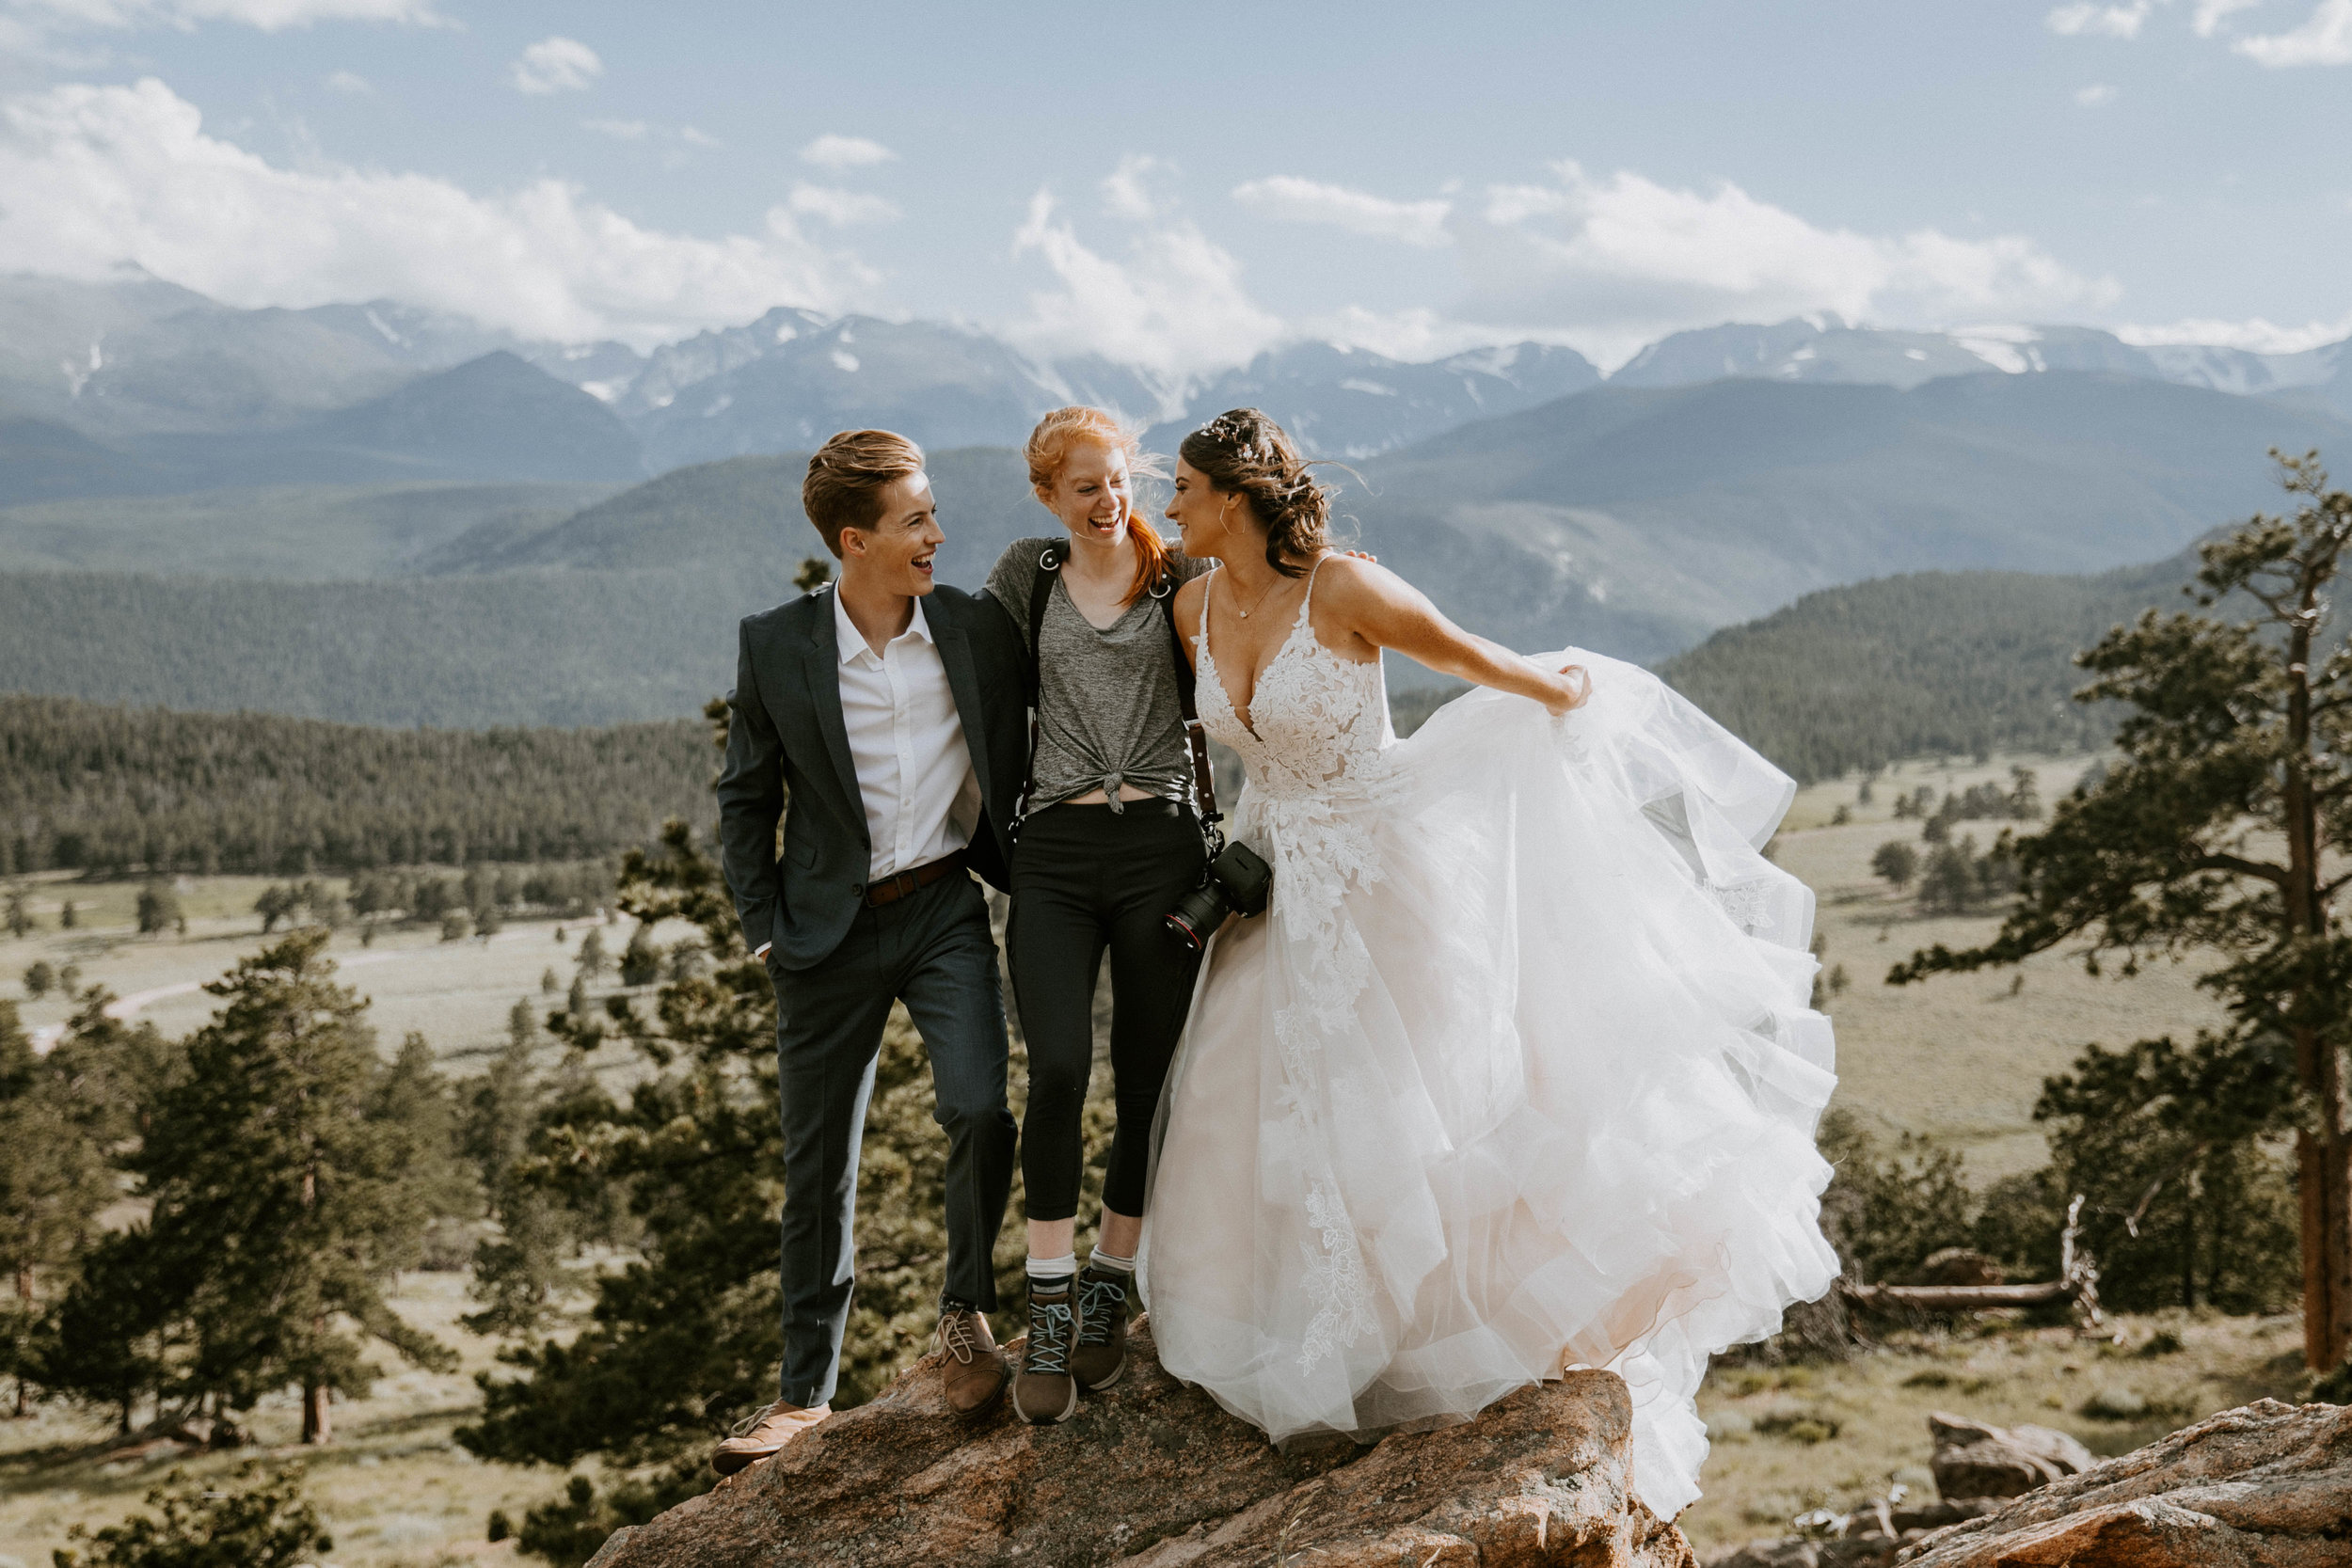 shelby robinson photography thistle wood photo rocky mountain national park rmnp elopement wedding destination wedding mountains hiking adventure bride